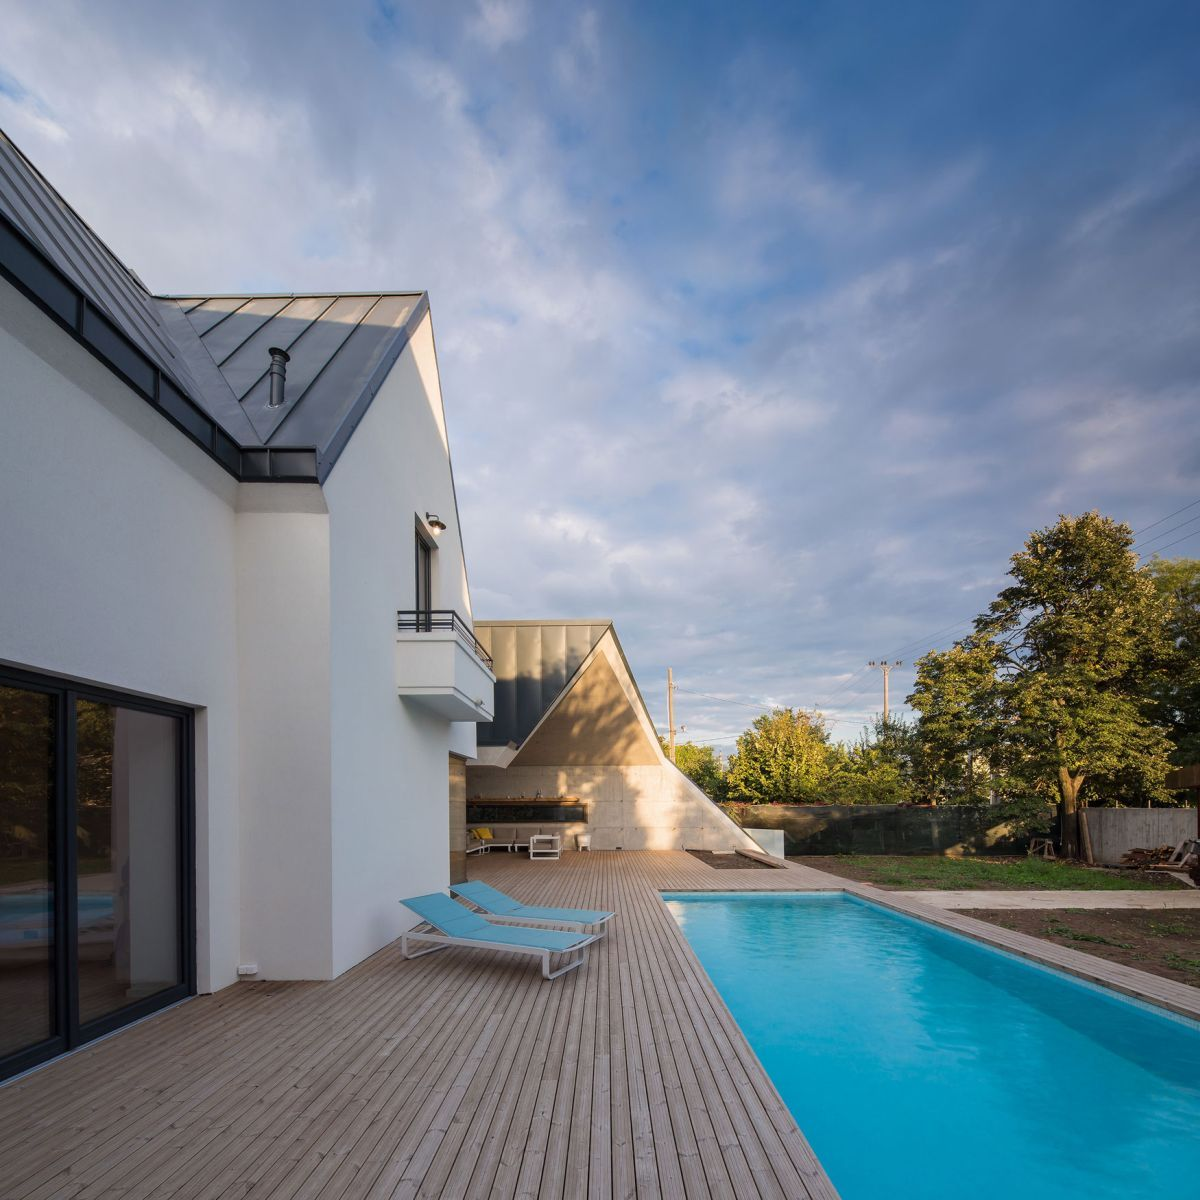 Casa G3 in Otopeni pool and wooden deck